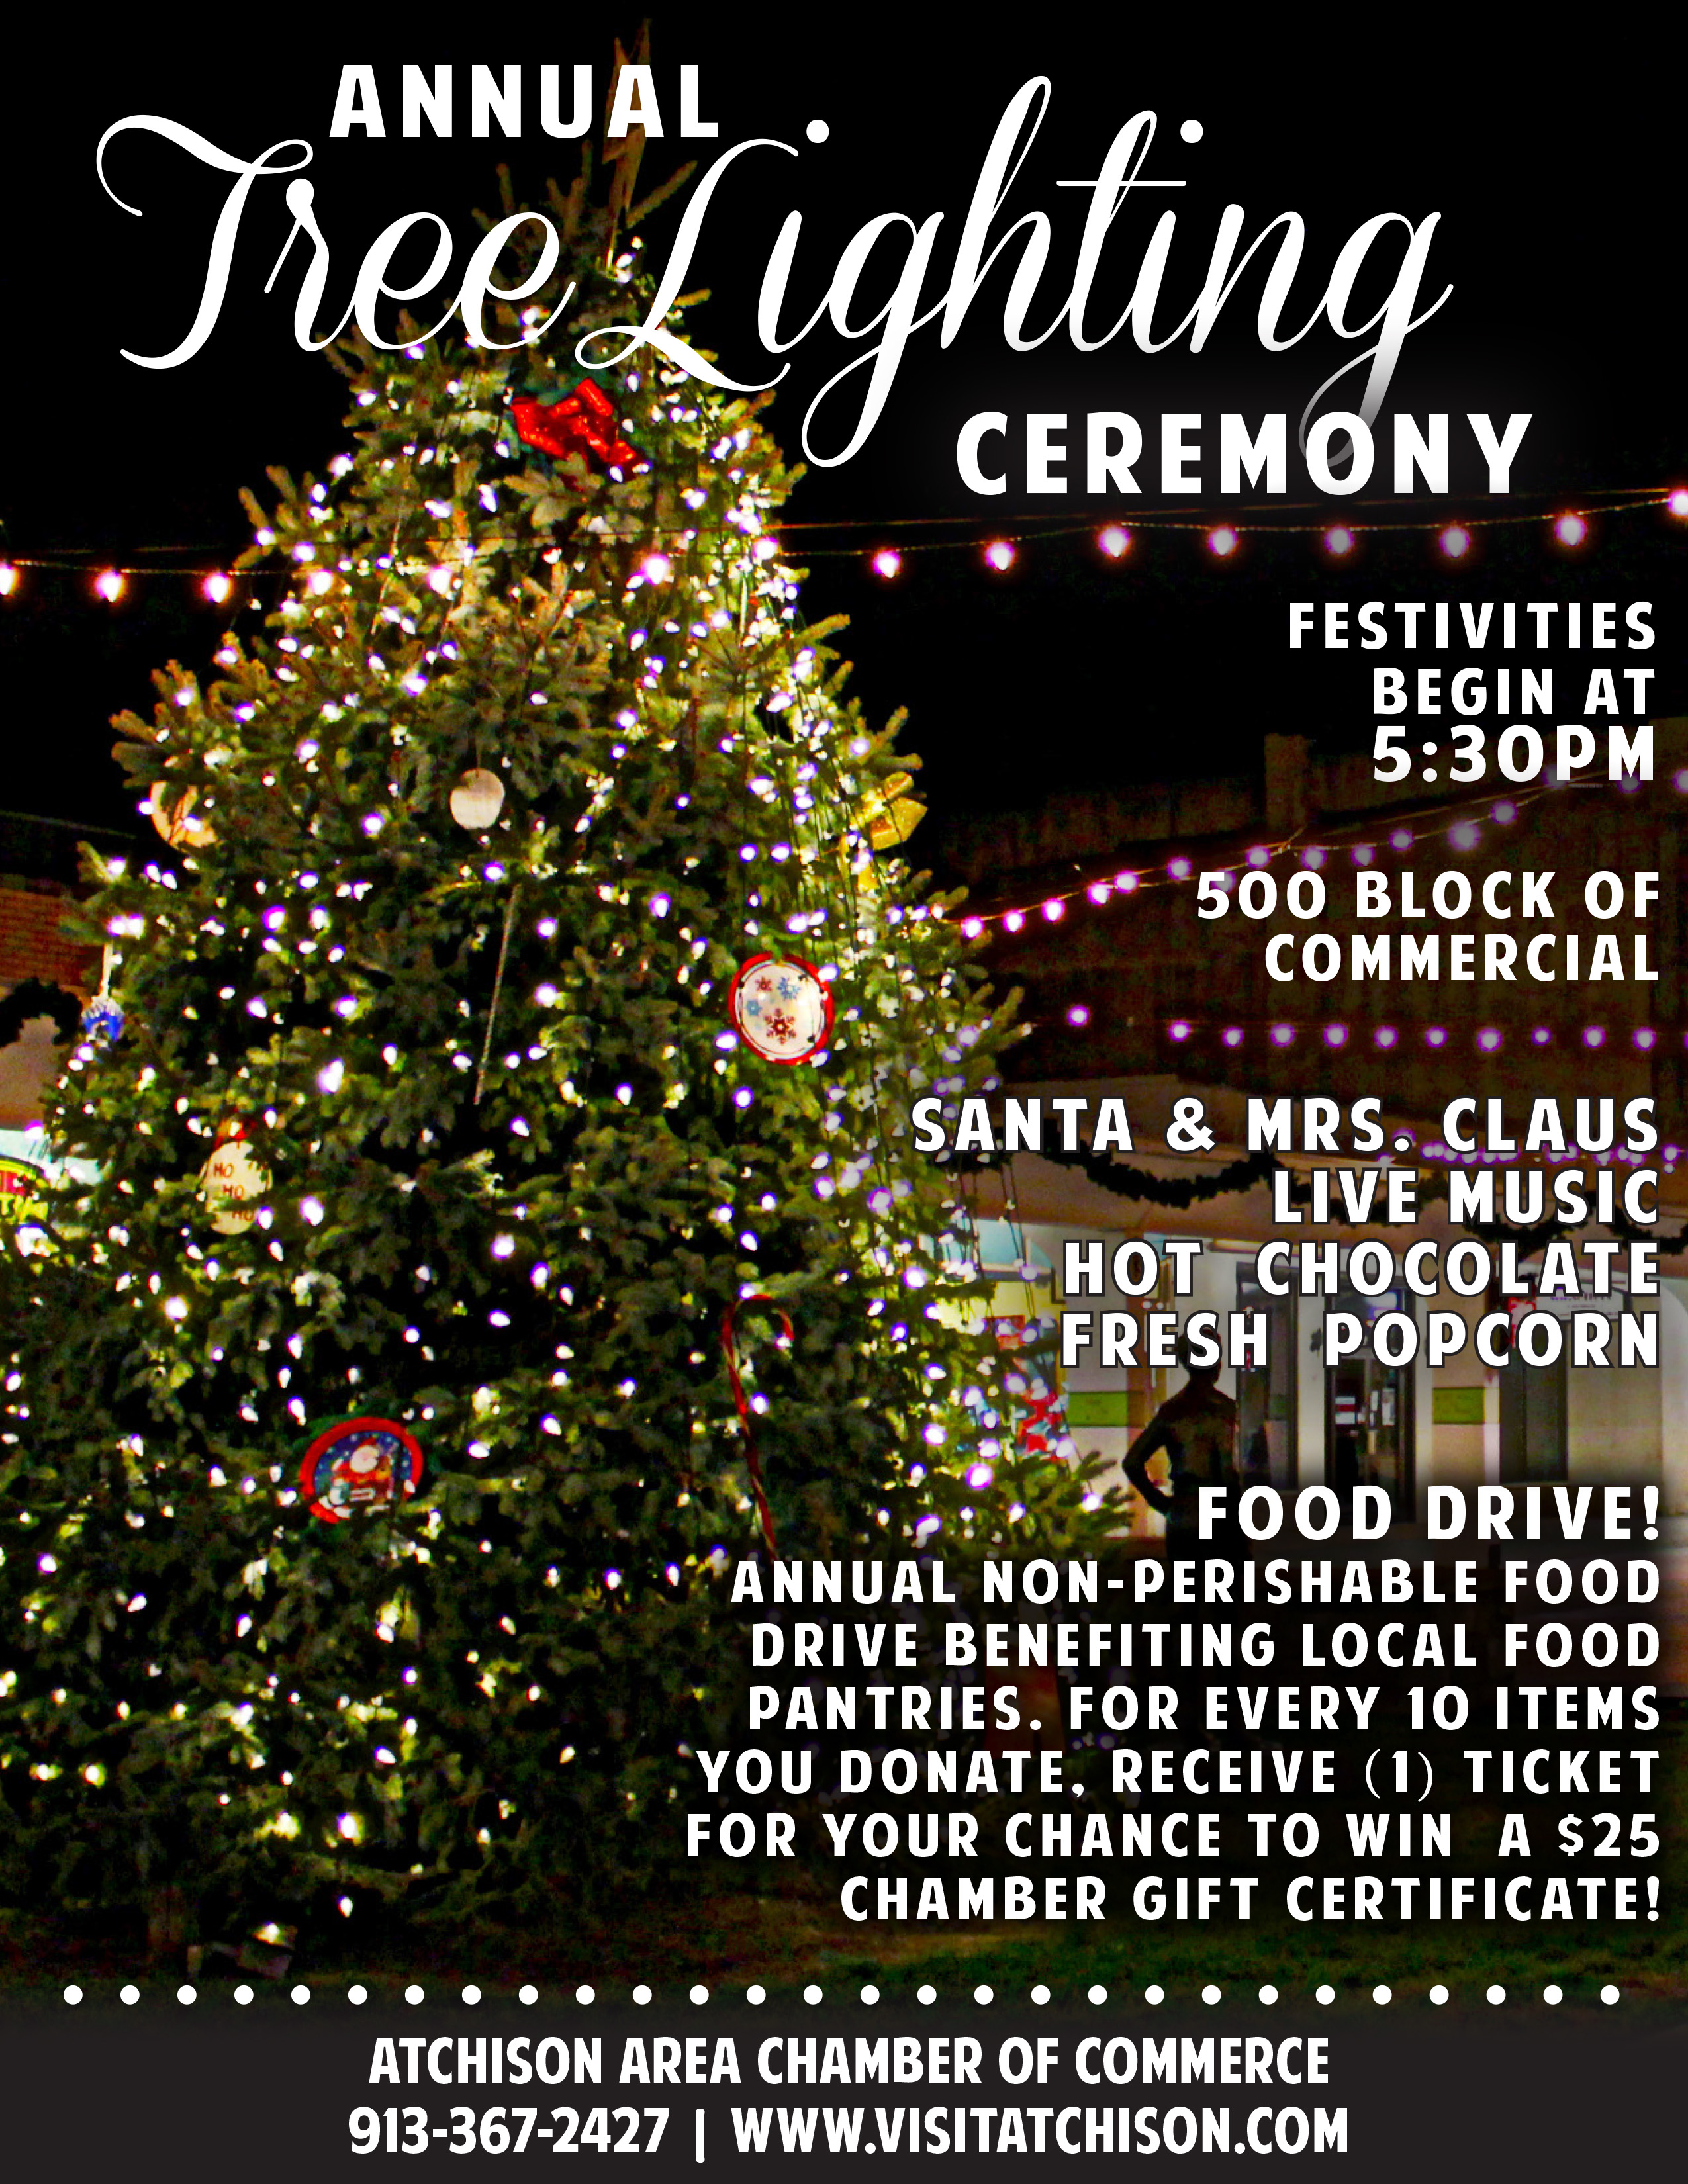 TreeLighting_annual flyer